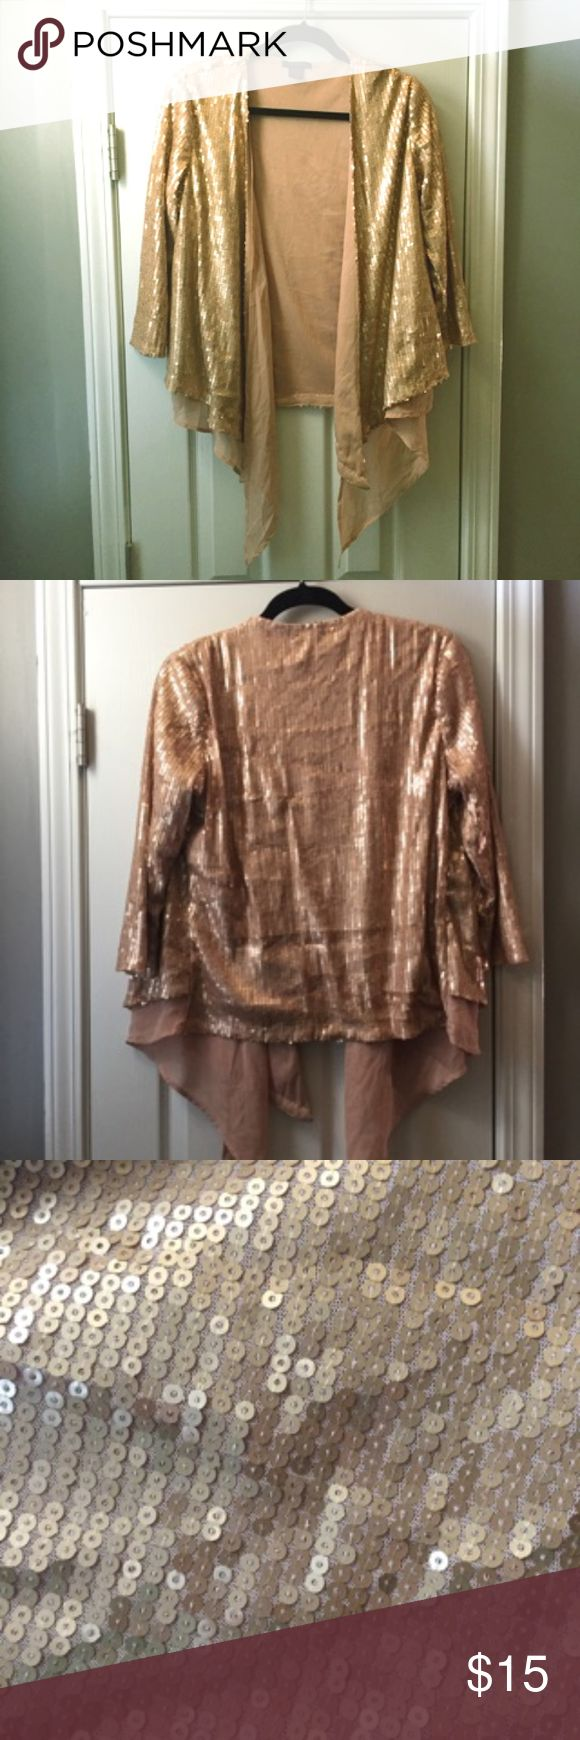 Champagne Gold Sequin Kimono shirt No flaws! This champagne (gold) sequin shirt is like a kimono, with an open front and see-through fabric accents. I also have a black one available, can bundle if interested! :) Tops Blouses